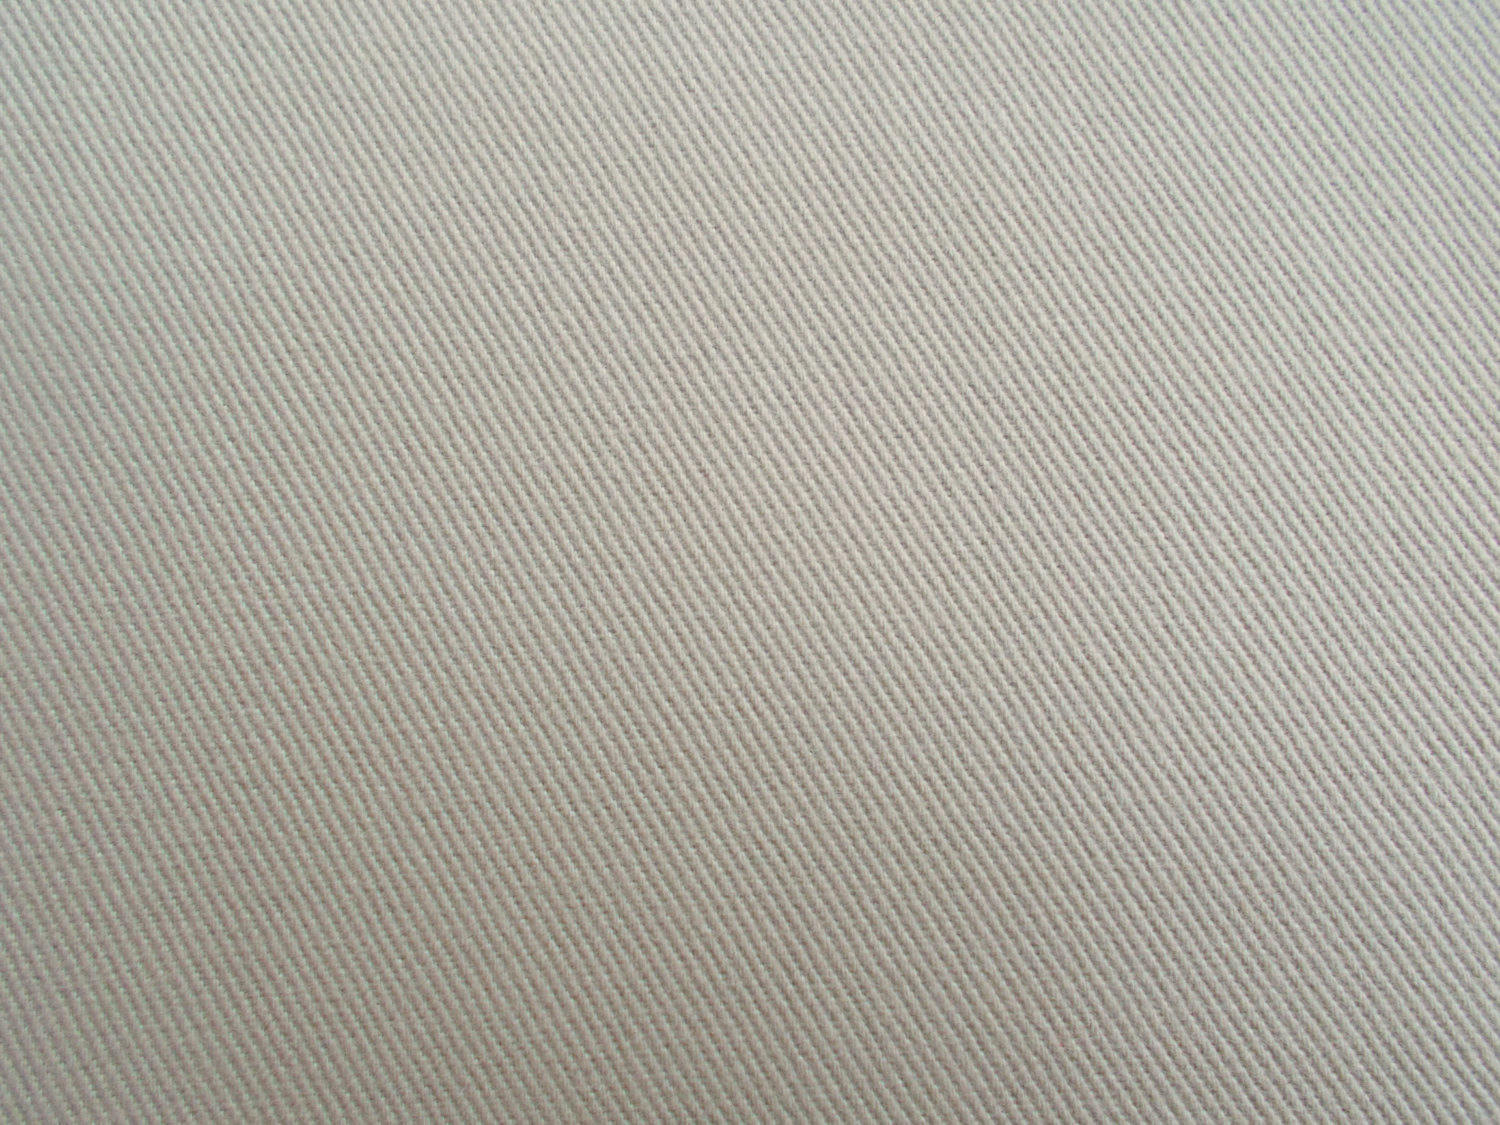 Cotton twill chino cloth close up detailed photo